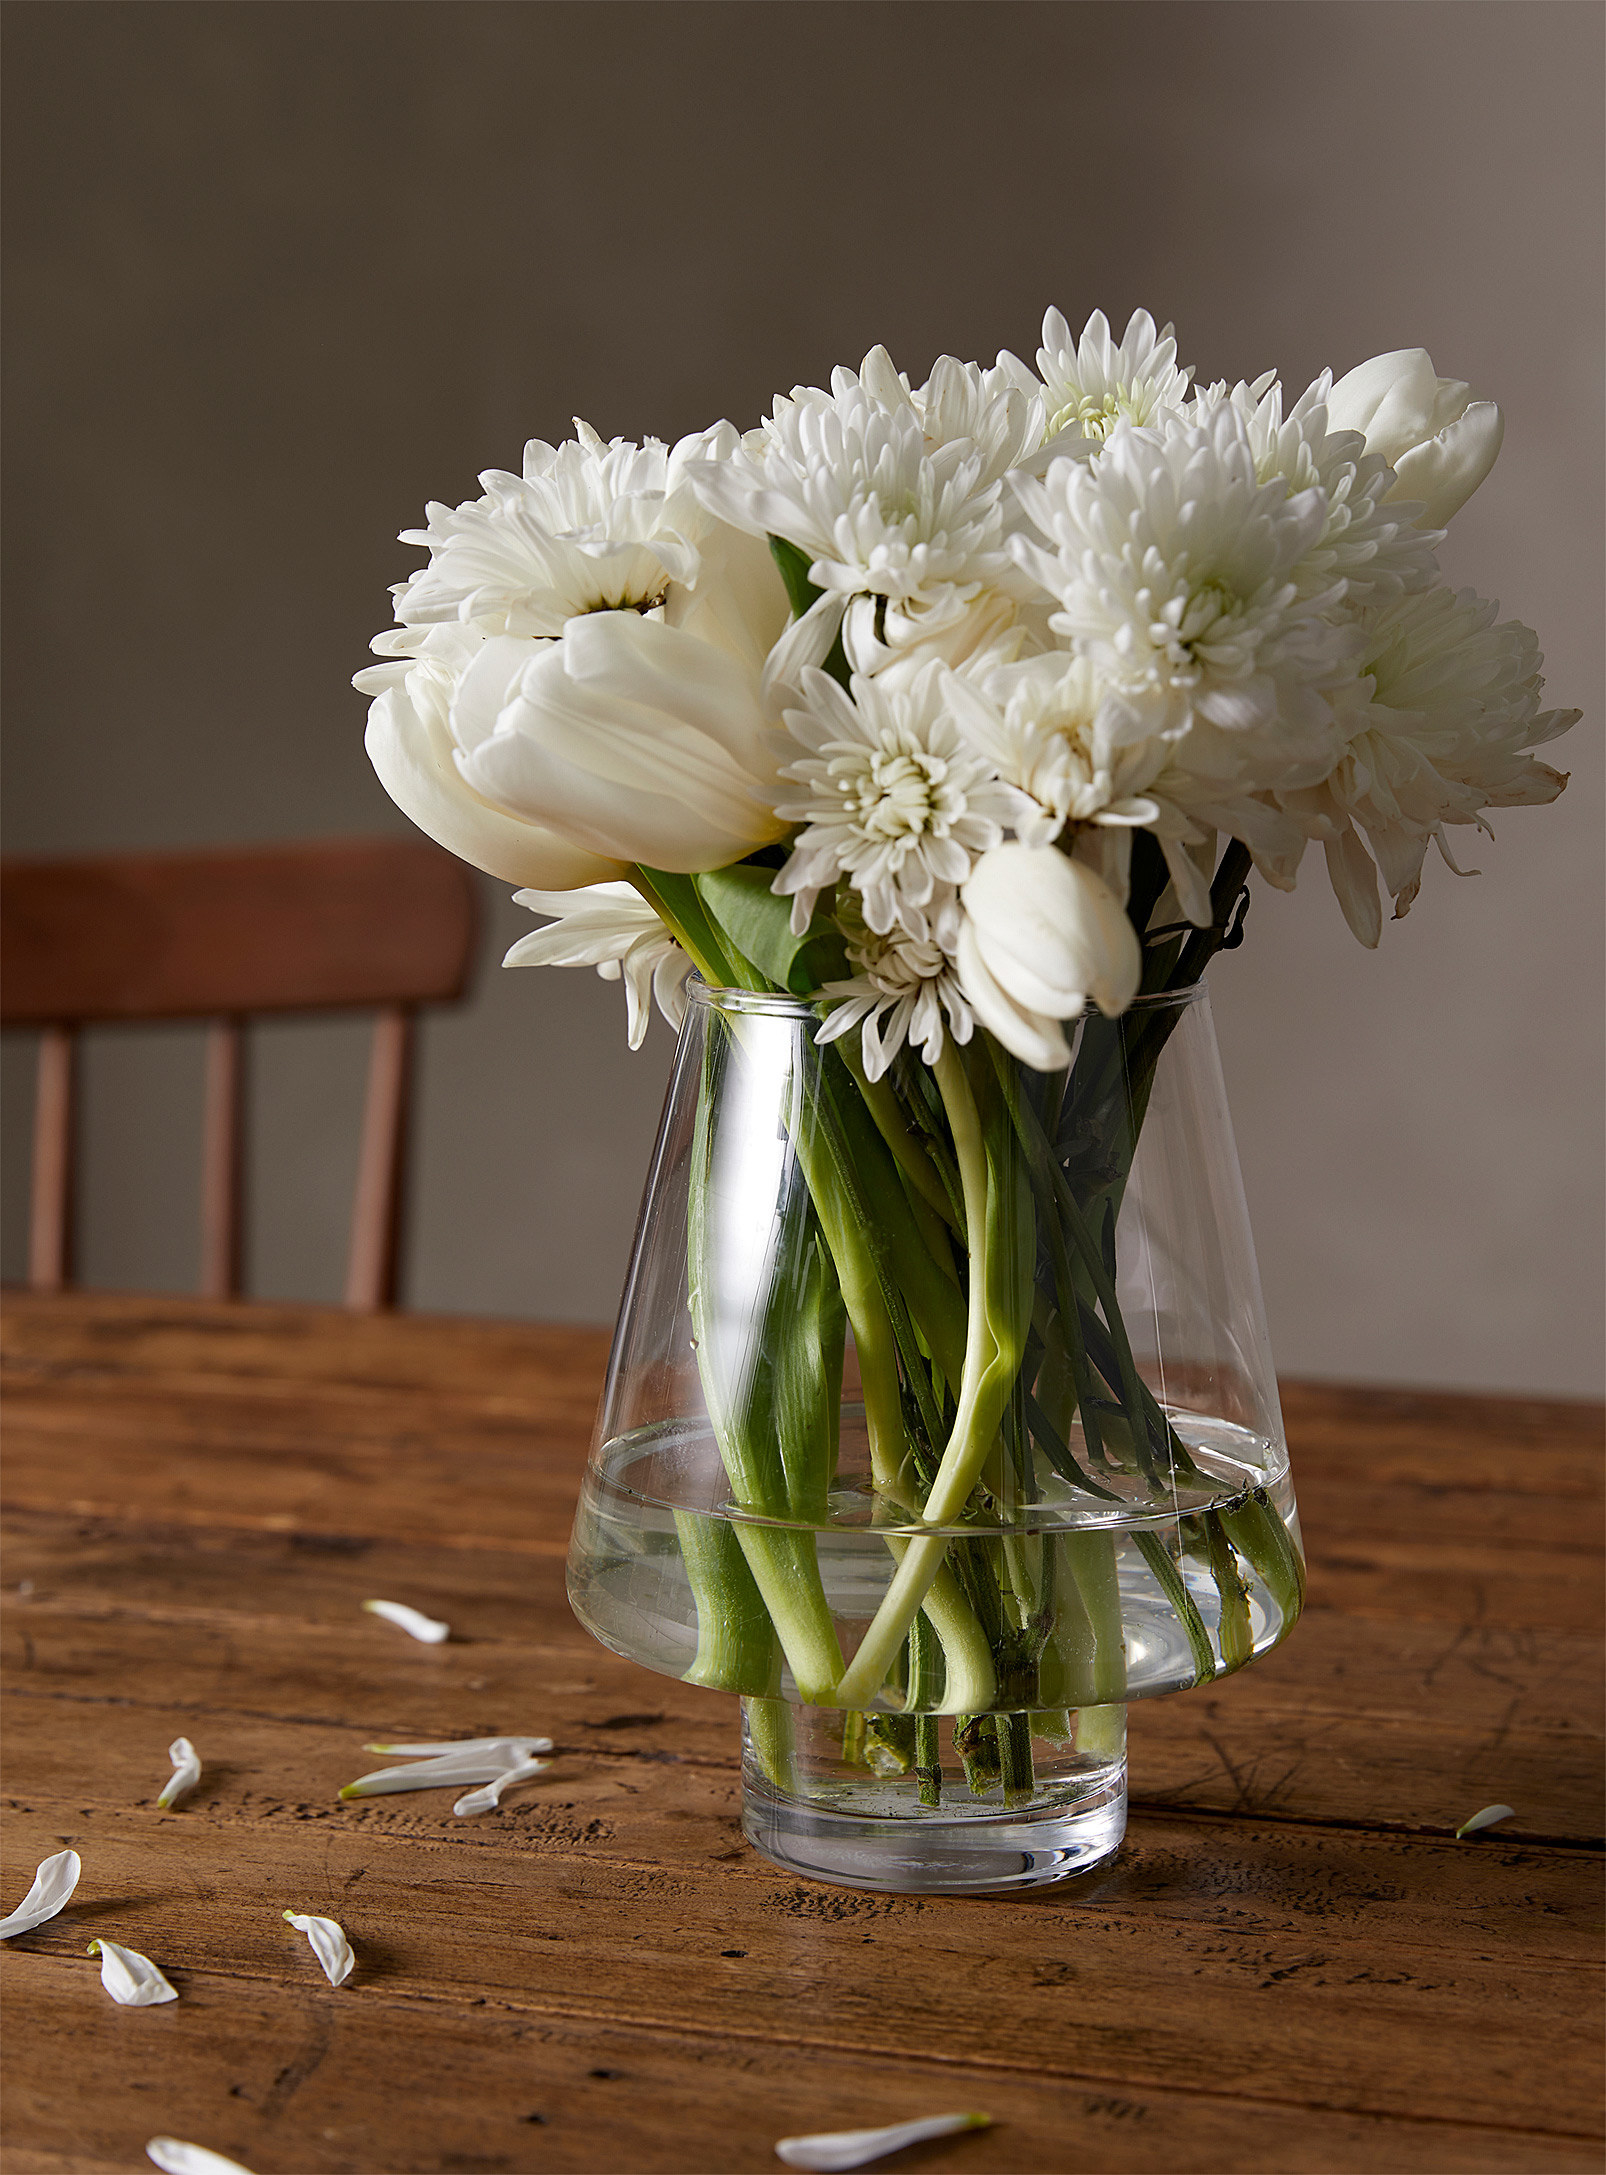 A tapered crystal vase filled with fresh cut flowers